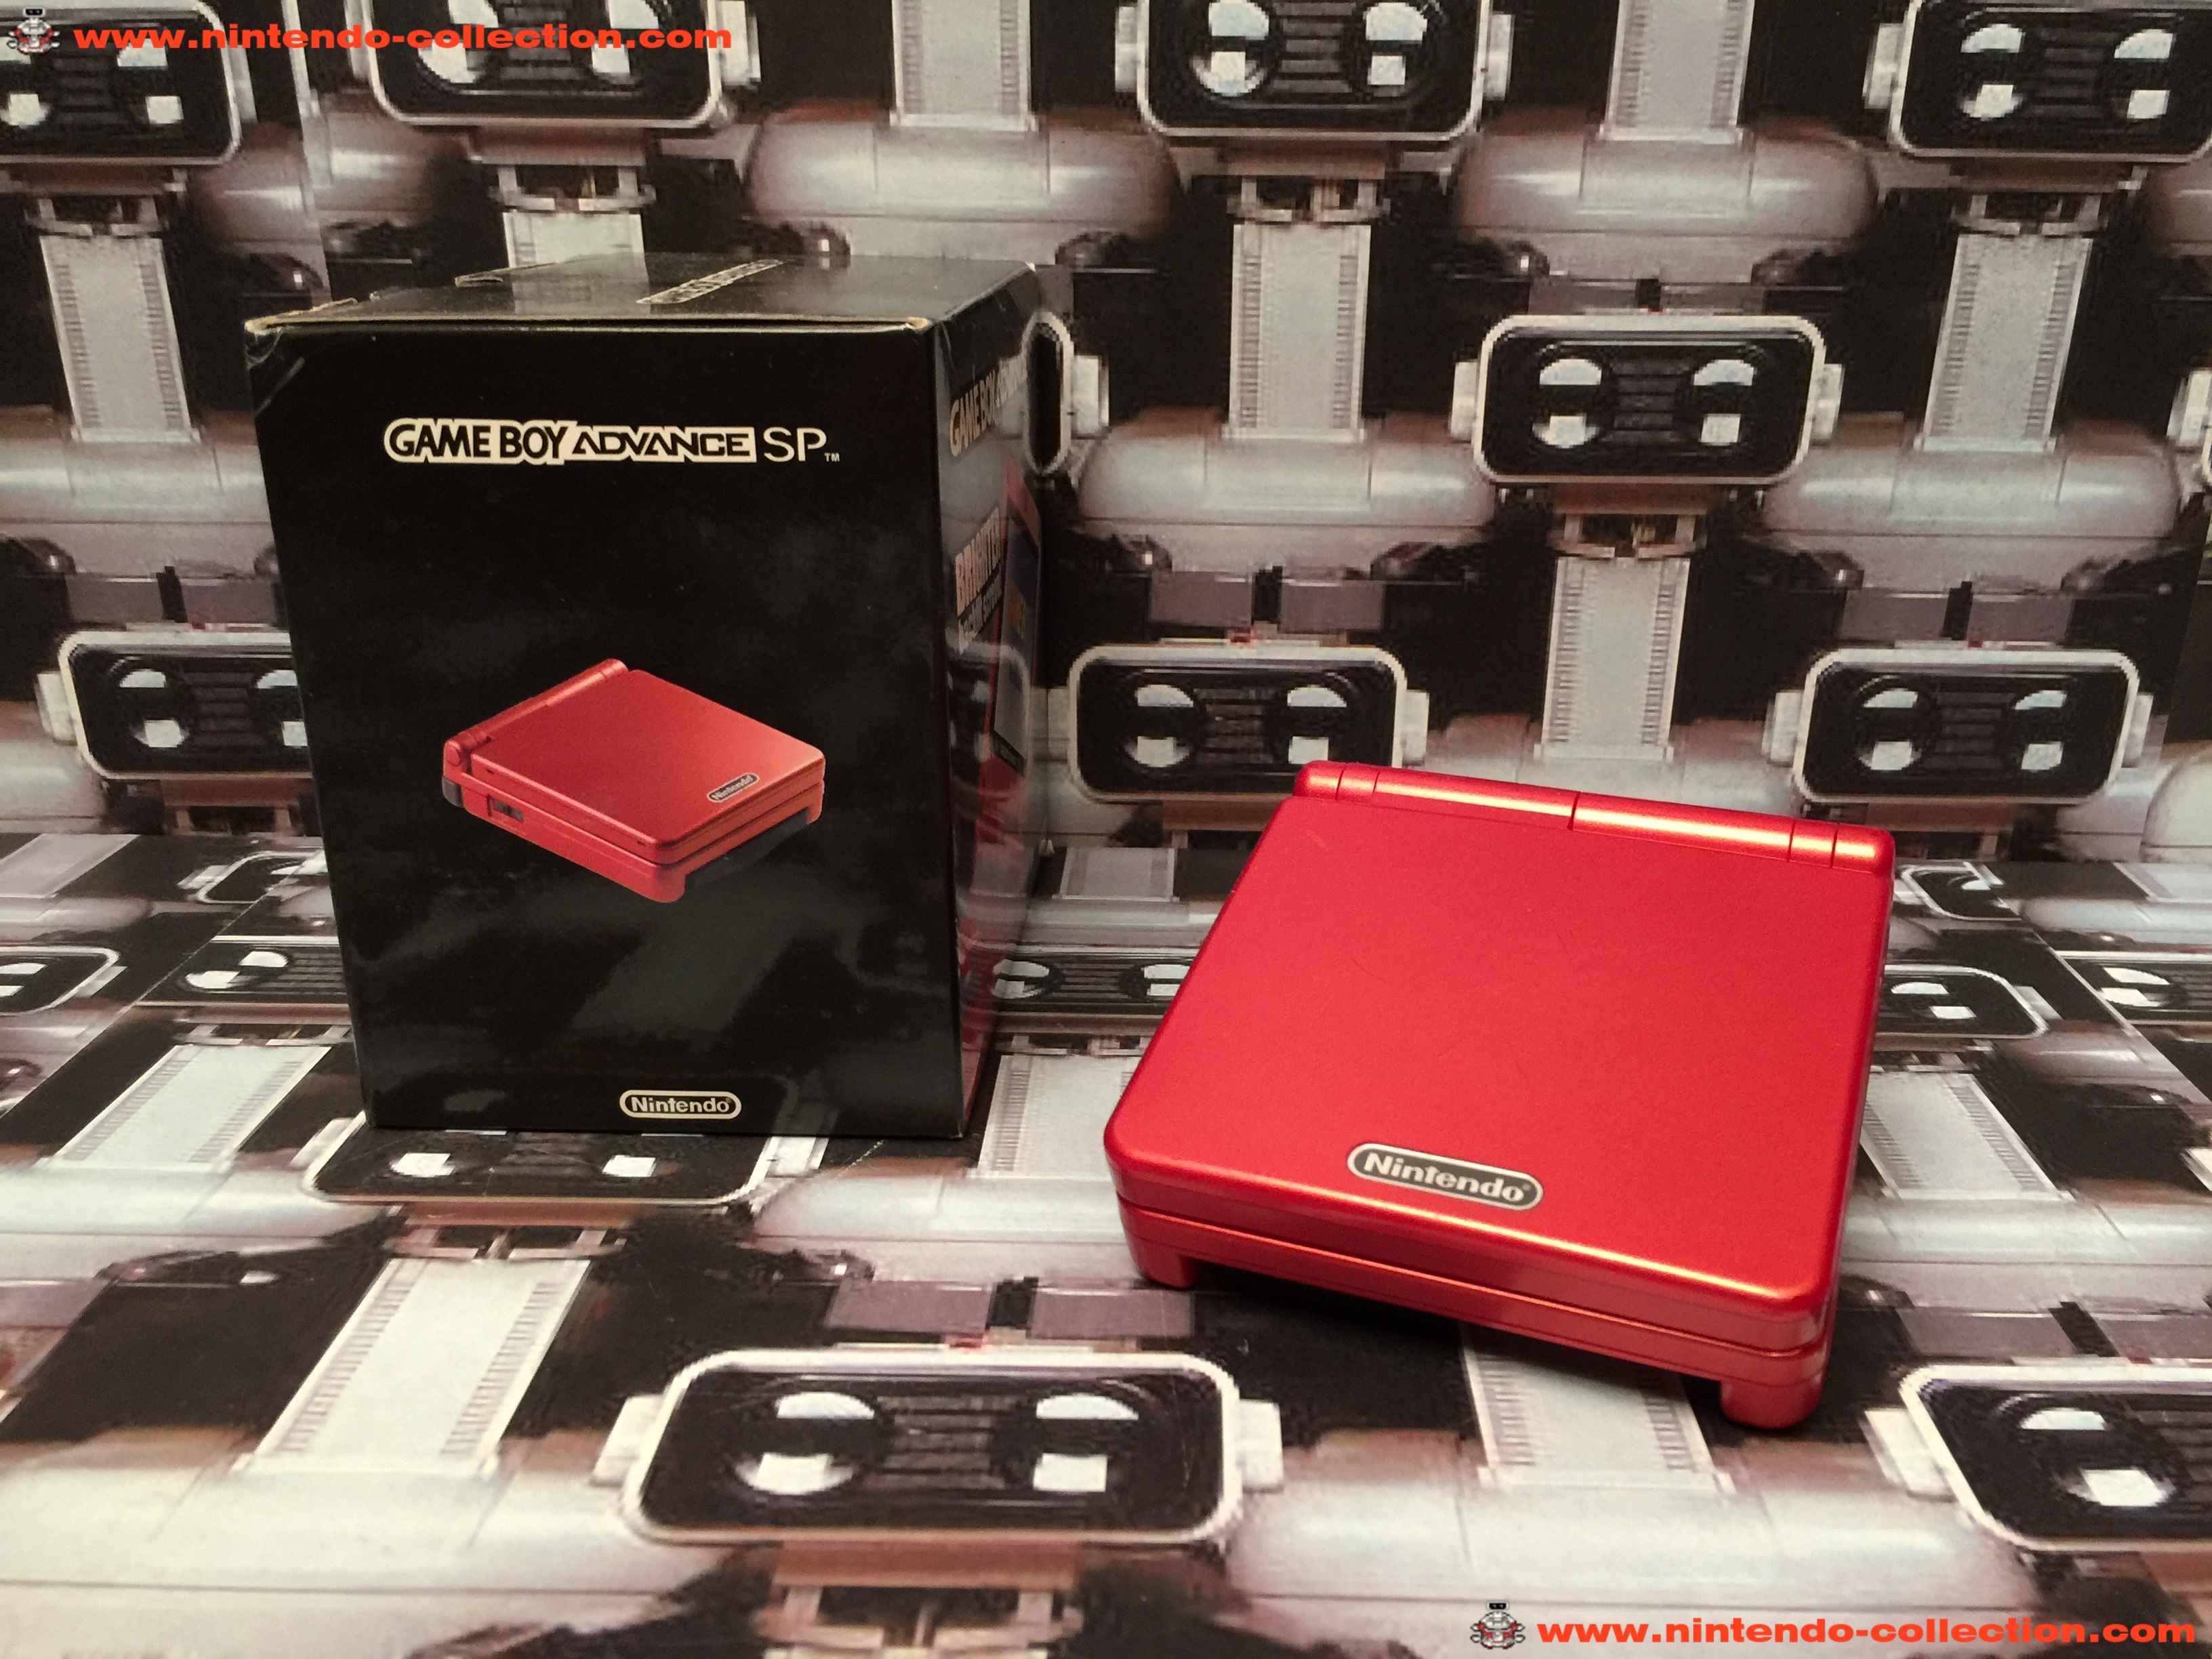 www.nintendo-collection.com - Gameboy Advance GBA SP Rouge Red edition Singapour Singapore - 02